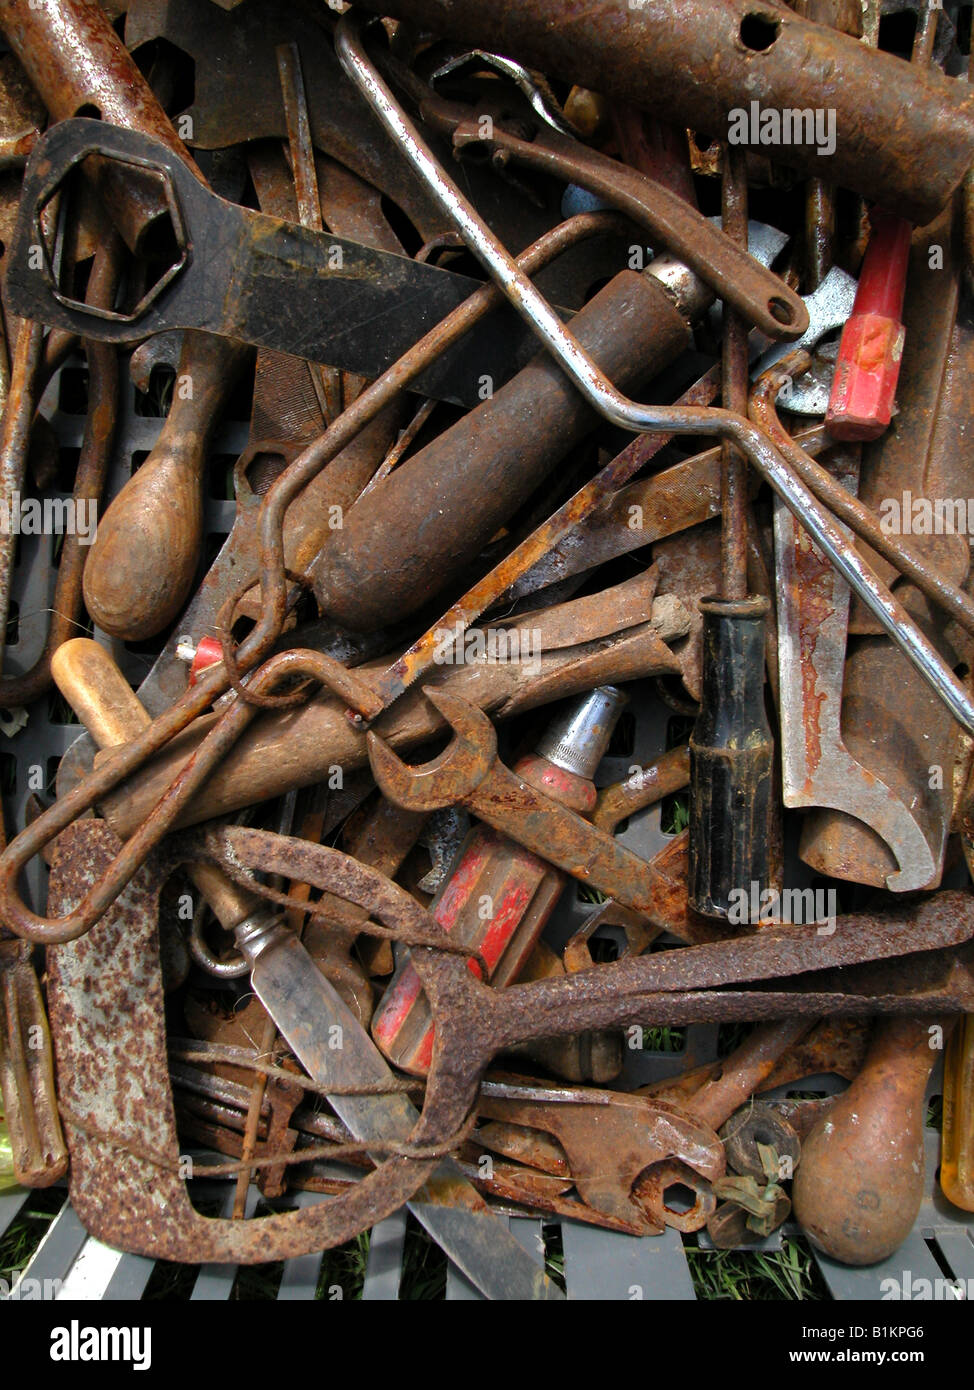 Box of rusty old tools for sale at boot fair including for Outdoor tools for sale